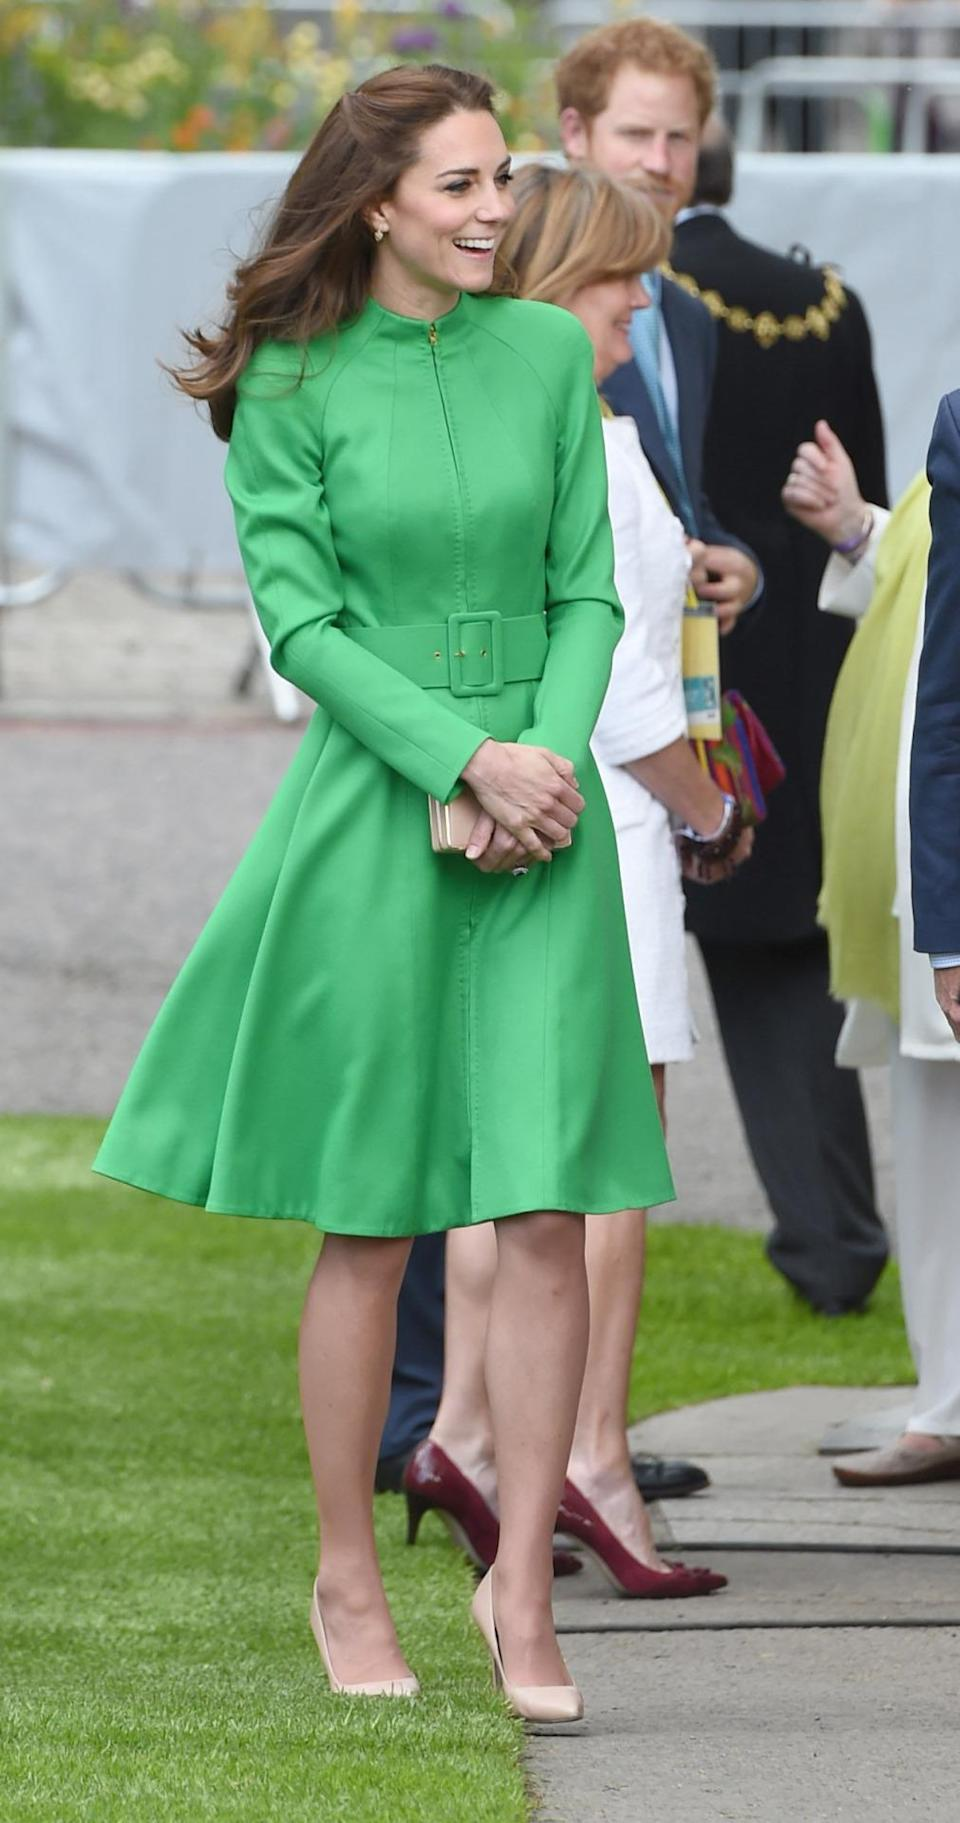 <p>Opting for a brighter look, the Duchess wore a green Catherine Walker coat dress to the Chelsea Flower Show. L.K. Bennett's nude clutch and pumps accessorised the outfit. <br></p><p><i>[Photo: PA]</i></p>